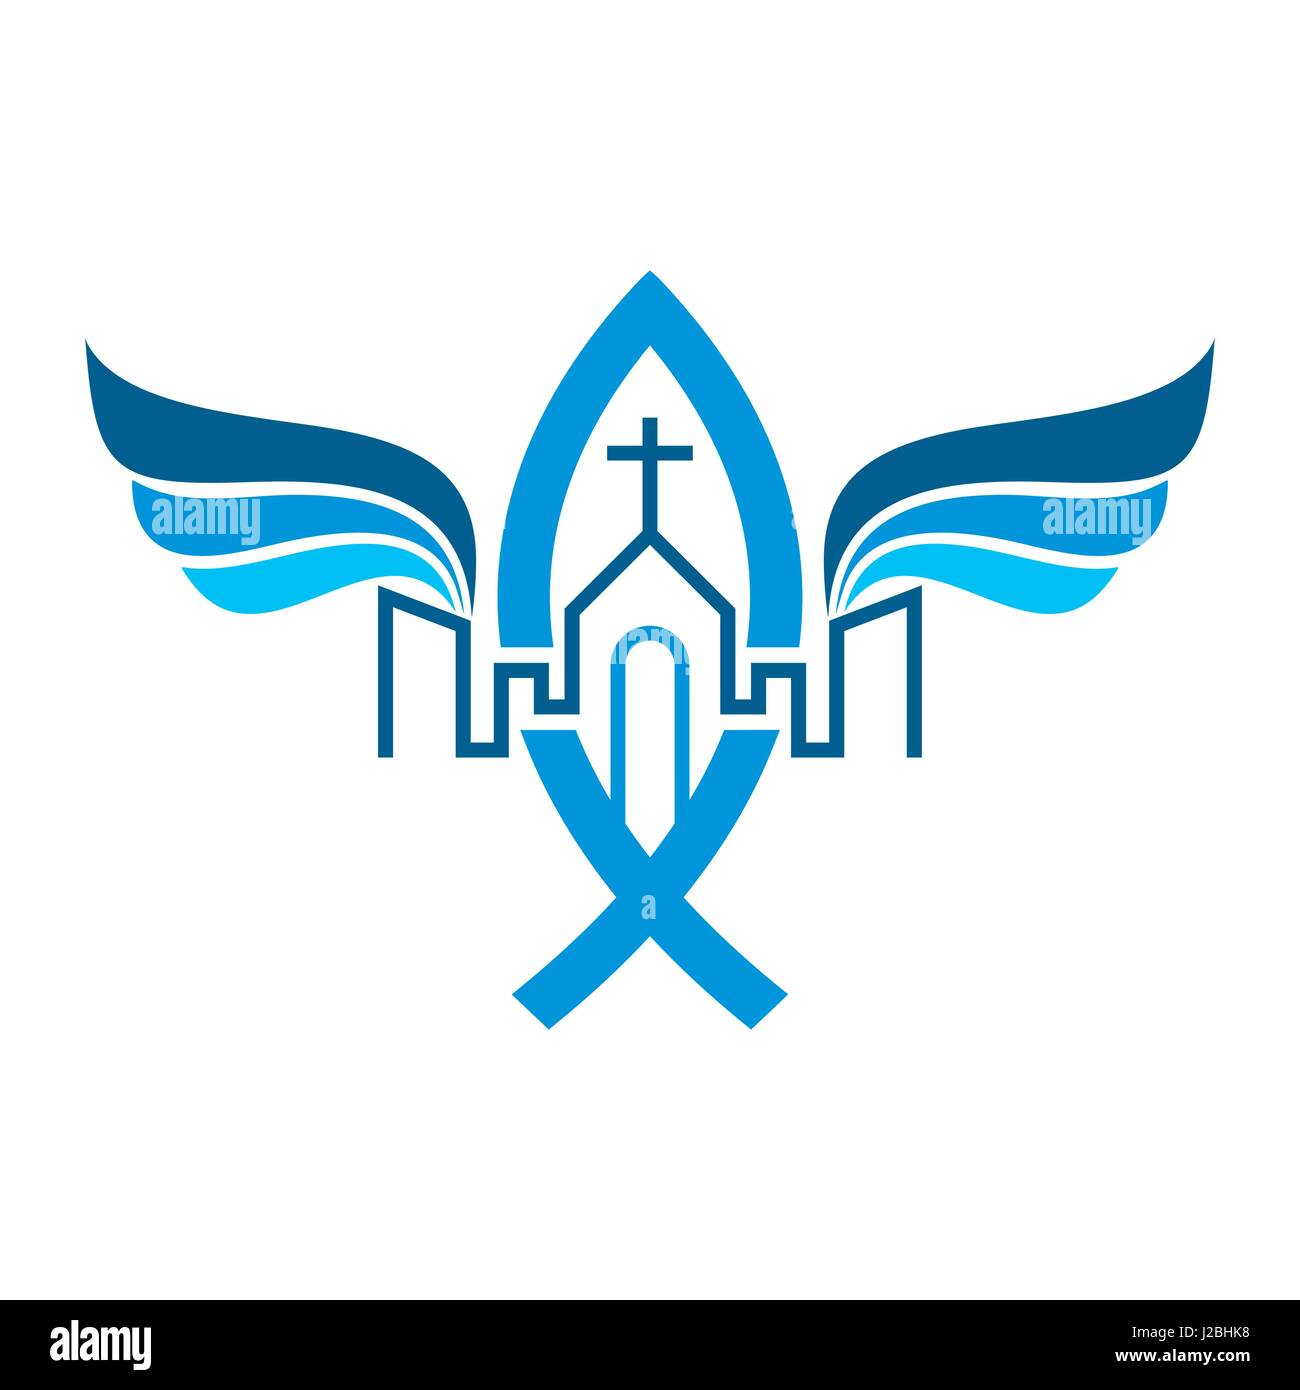 Church logo church of the lord and savior jesus christ stock church of the lord and savior jesus christ biocorpaavc Image collections